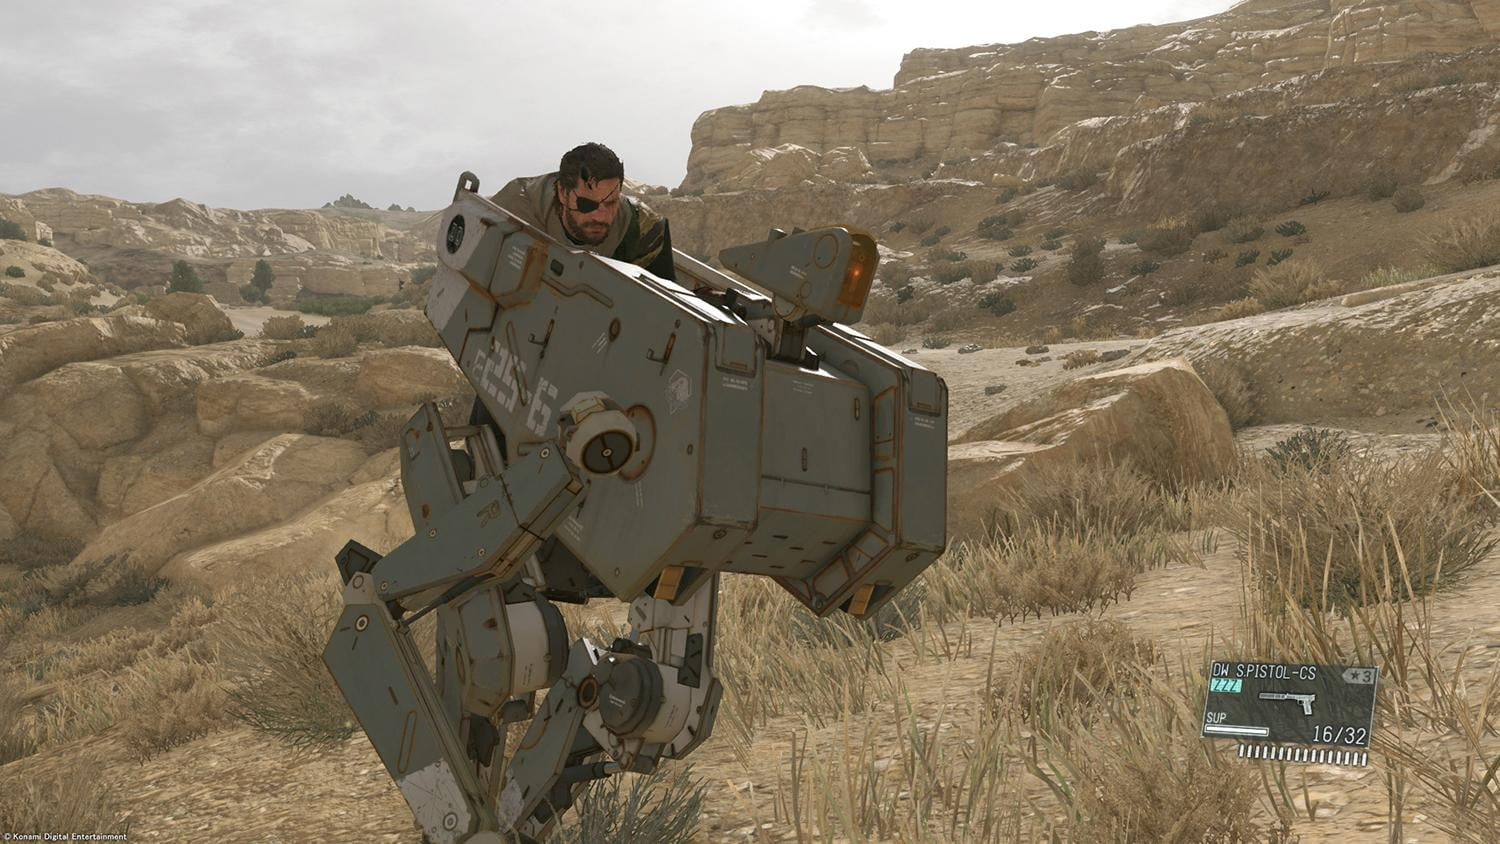 Metal Gear Solid V: The Phantom Pain Hands On Review | Digital Trends